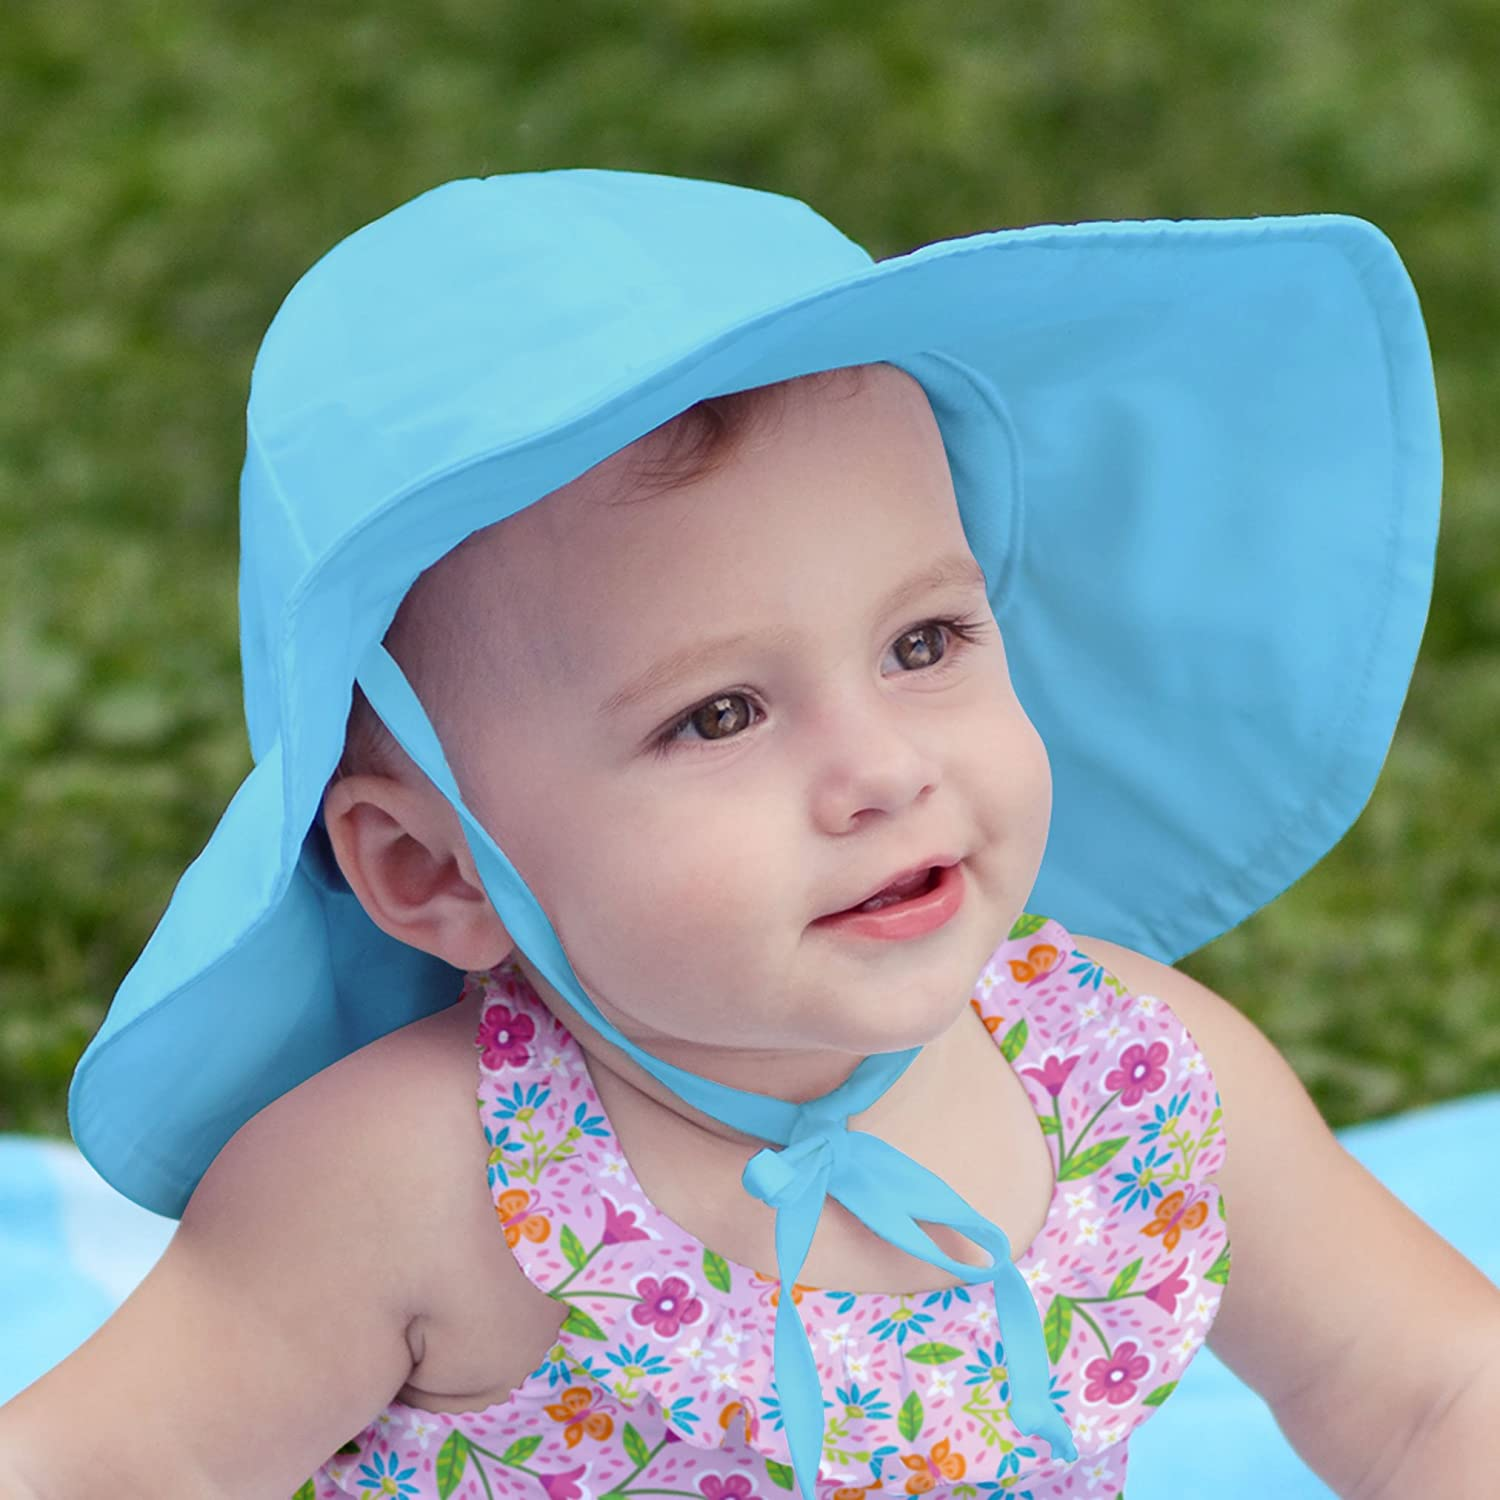 Amazon.com  UPF 50+ Sun Protection Brim Hat by Iplay Royal Blue 9-18 Mths   Infant And Toddler Hats  Clothing 8e2ad3751a00